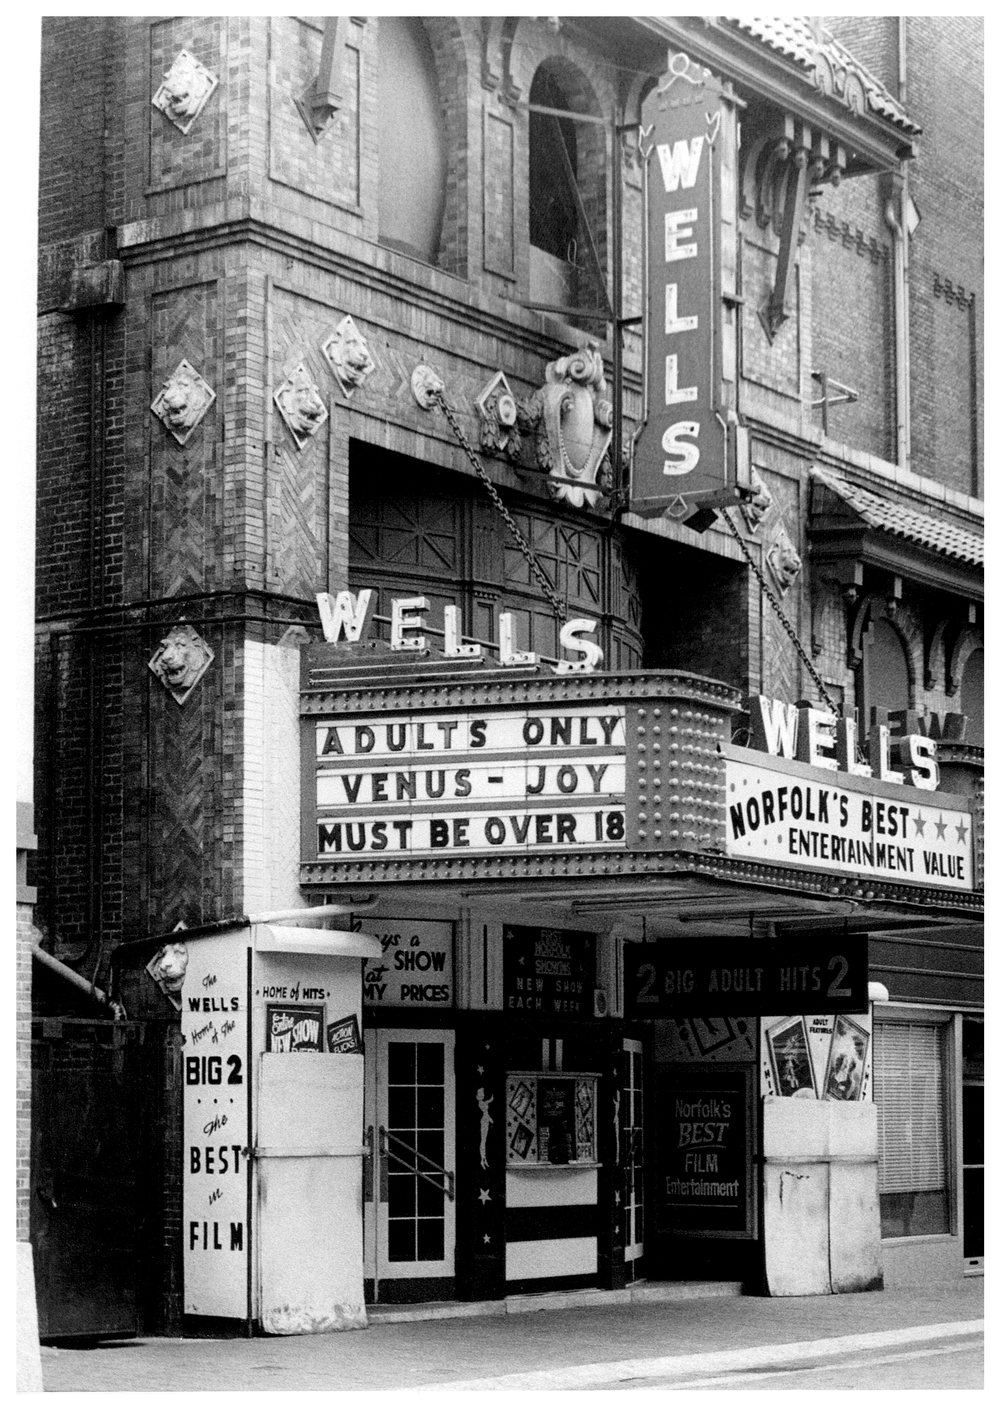 The Wells Theatre in 1979